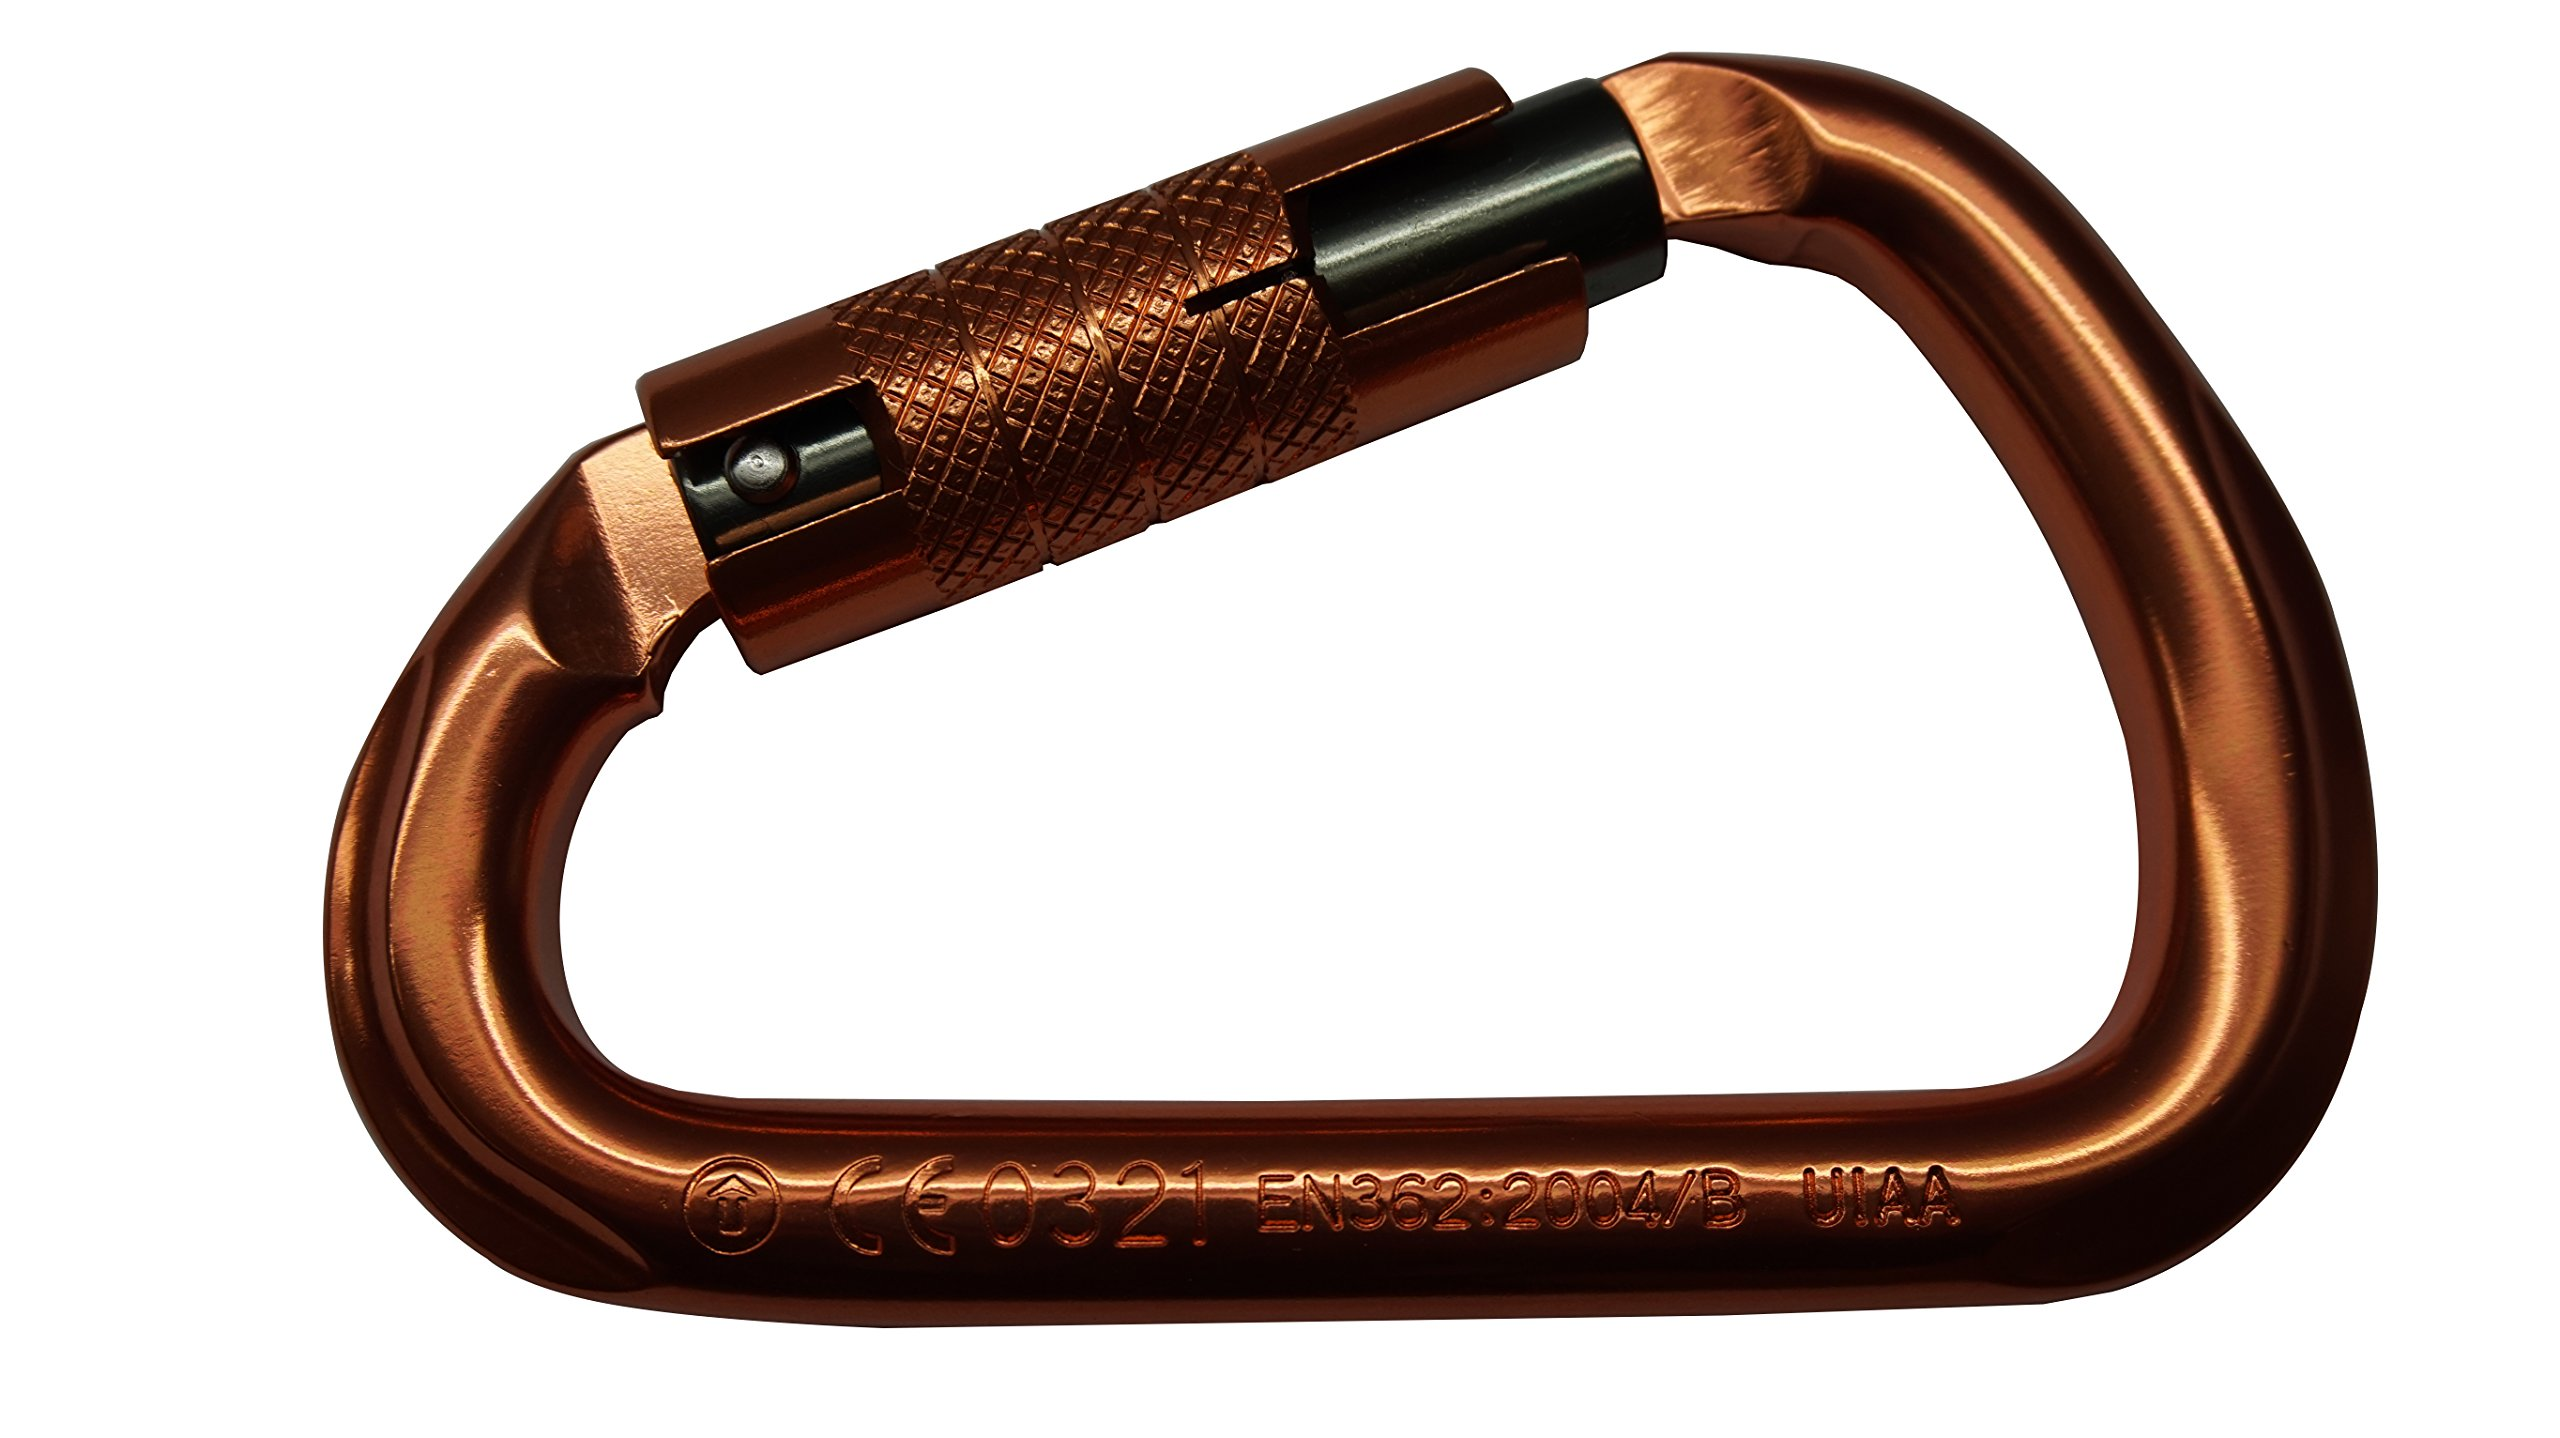 ProClimb USR-128-A3TU Head Carabiner, 2.87'' Height, 2.87'' Wide, 4.49'' Length, Aluminum, Copper